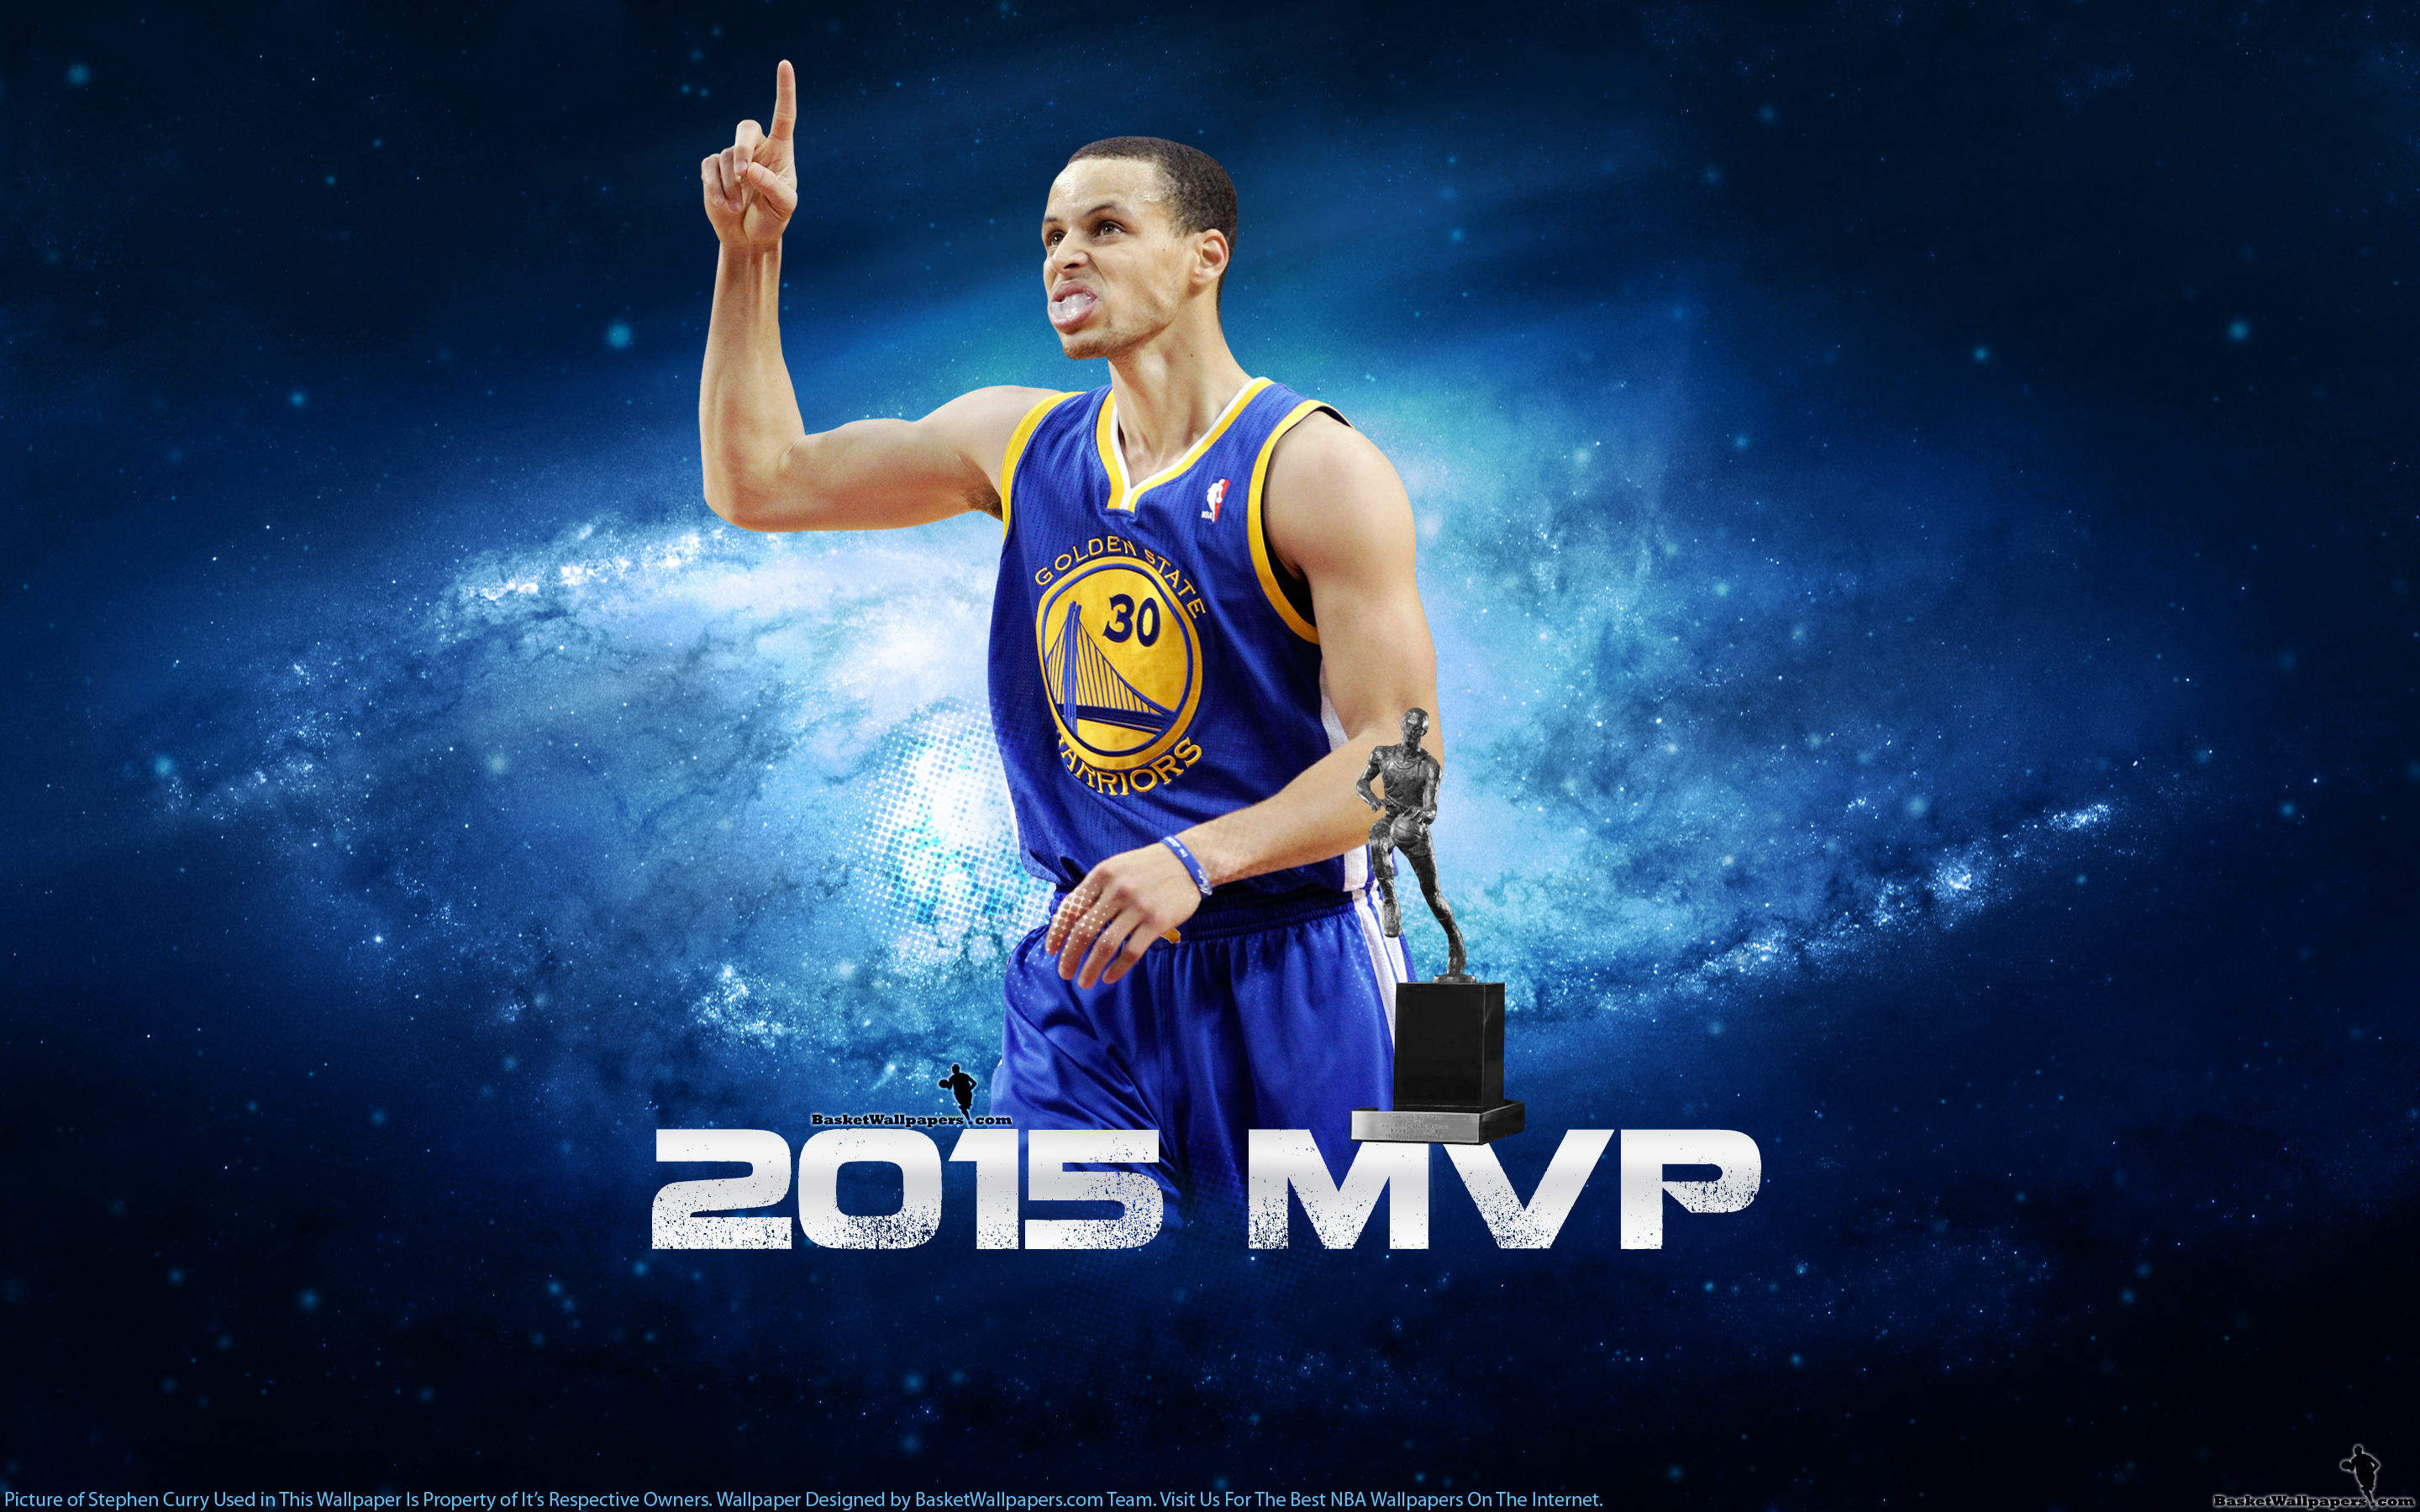 stephen curry heightstephen curry instagram, stephen curry stats, stephen curry рост, stephen curry wallpaper, stephen curry кроссовки, stephen curry art, stephen curry 2017, stephen curry height, stephen curry wife, stephen curry обои, stephen curry 3 point, stephen curry shooting form, stephen curry 2016, stephen curry nba, stephen curry hd, stephen curry mix, stephen curry mvp, stephen curry фото, stephen curry 3, stephen curry song